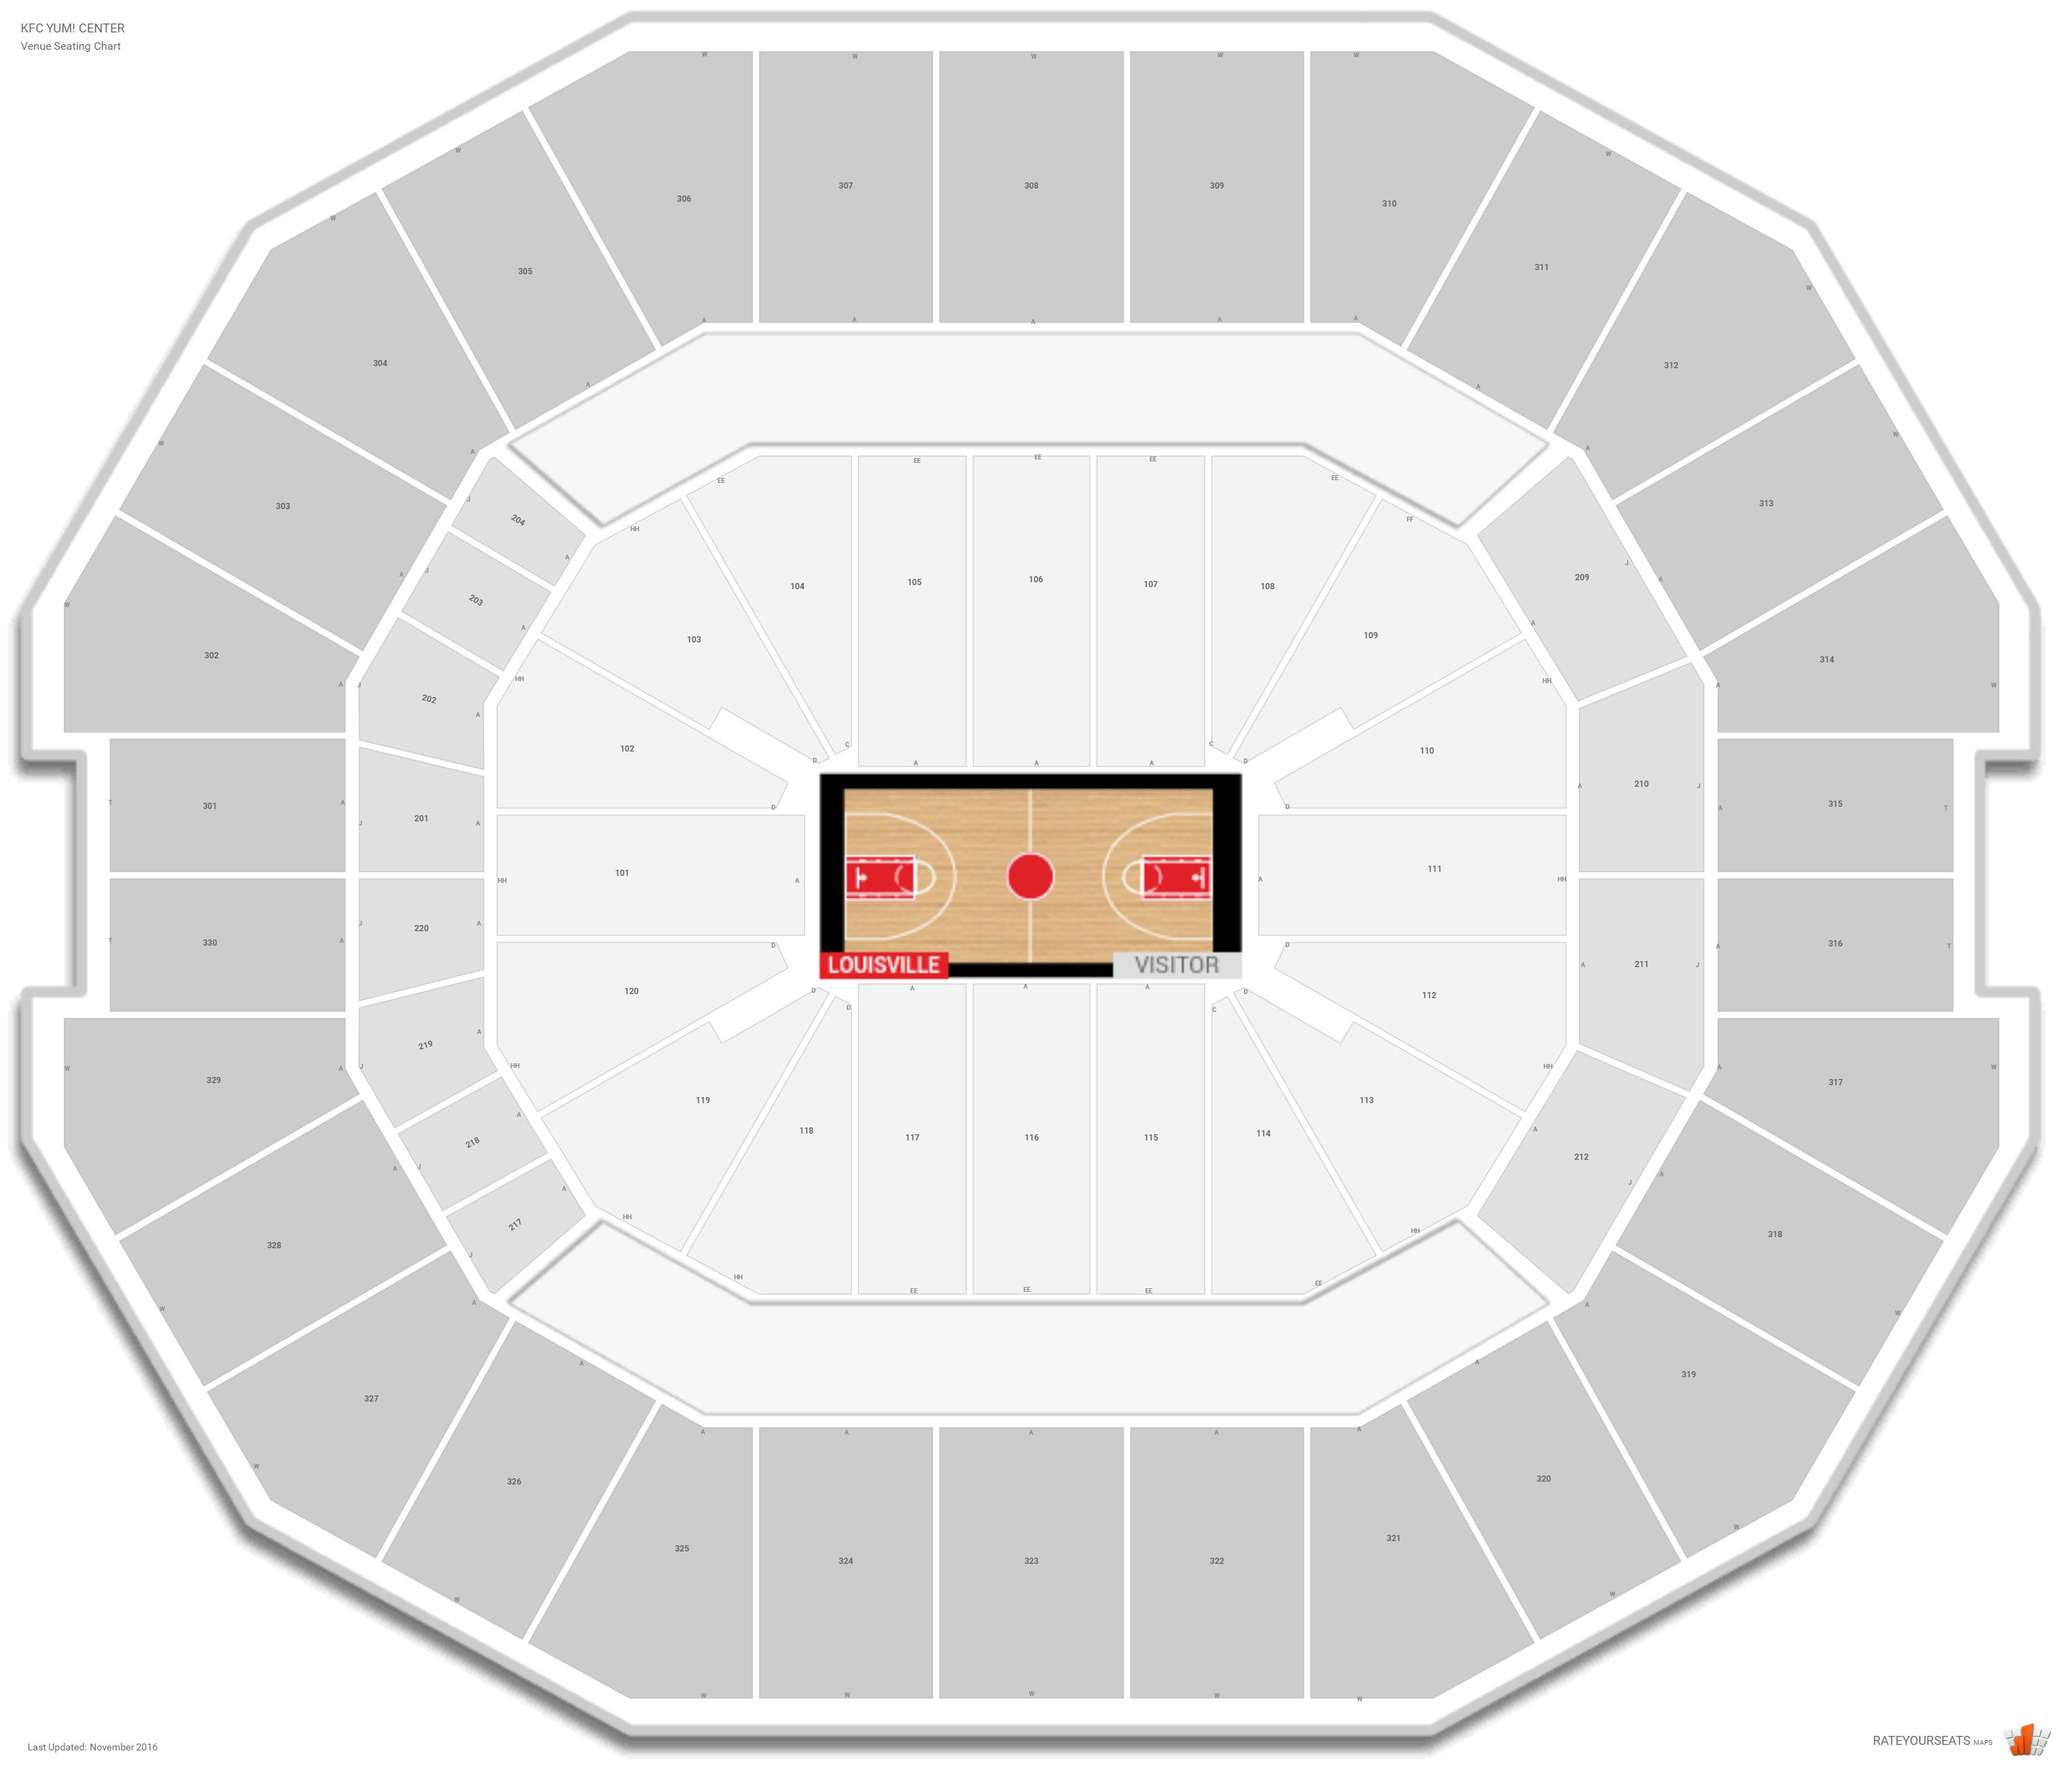 Kfc yum center louisville seating guide rateyourseats com